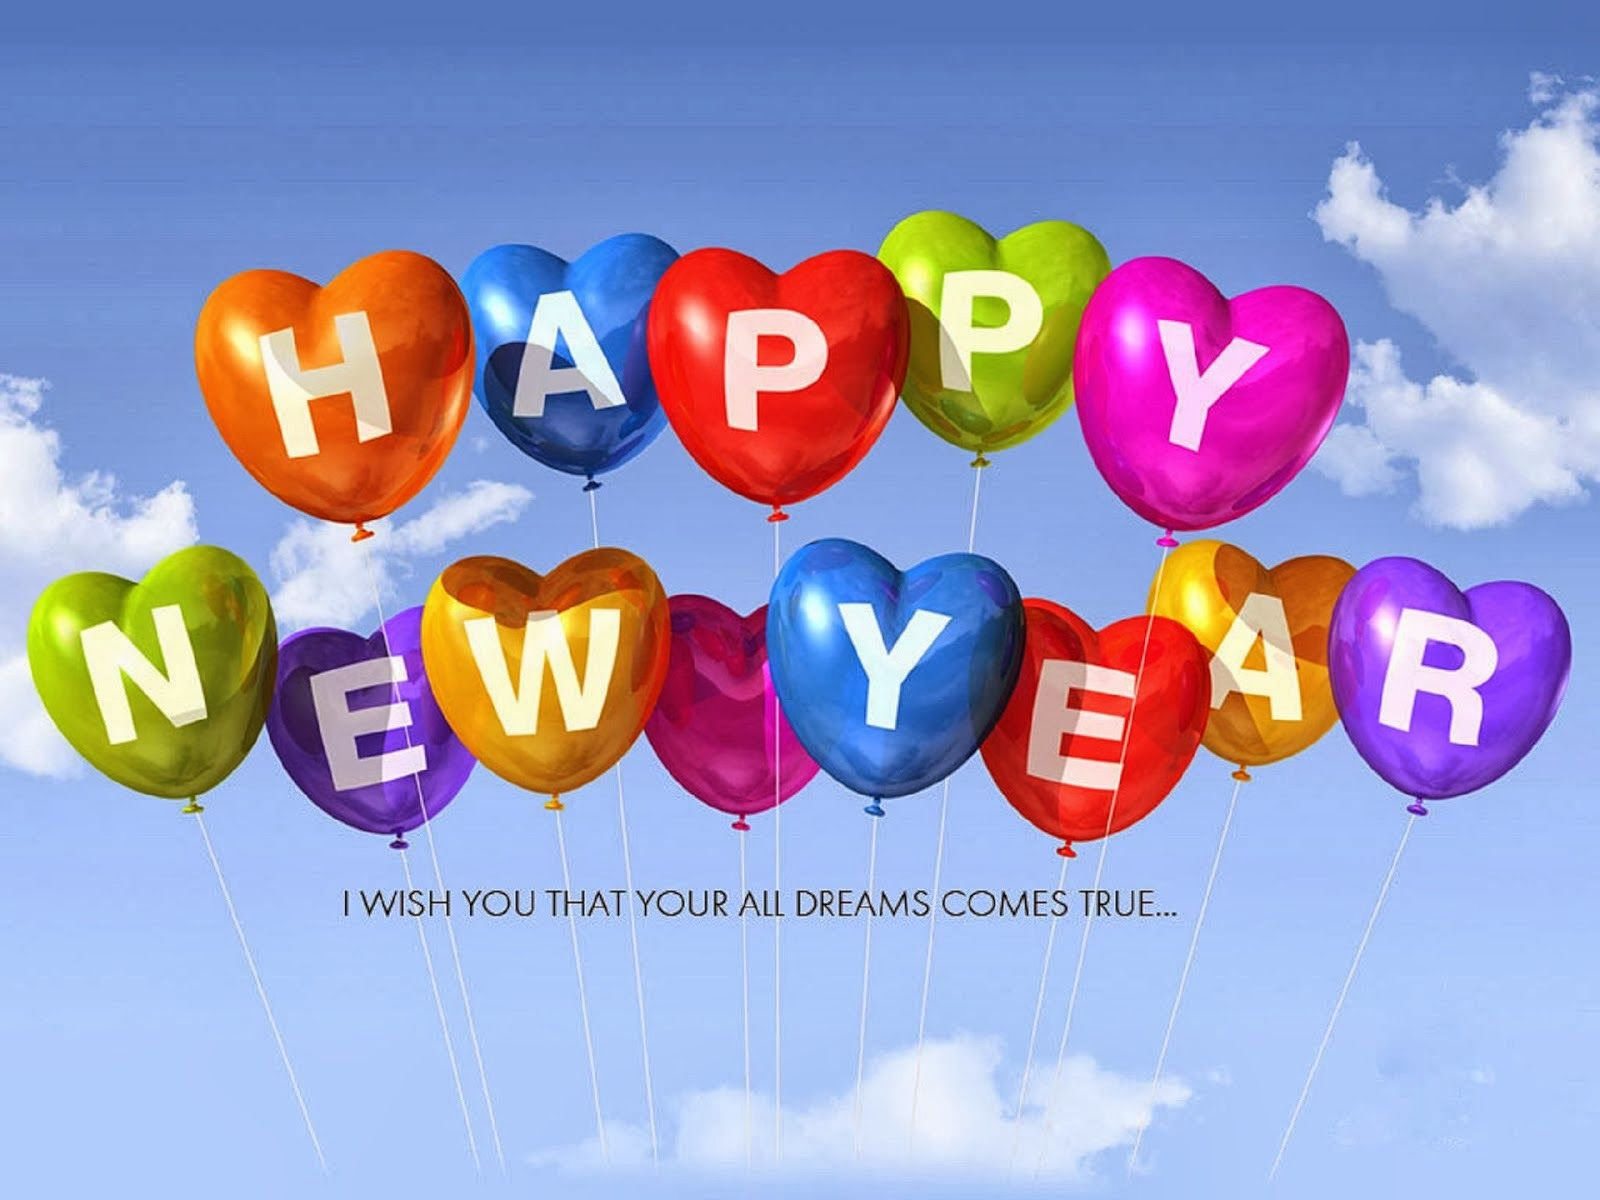 You can download happy new year hd images 2015 herehappy new year you can download happy new year hd images 2015 herehappy new year hd images kristyandbryce Image collections